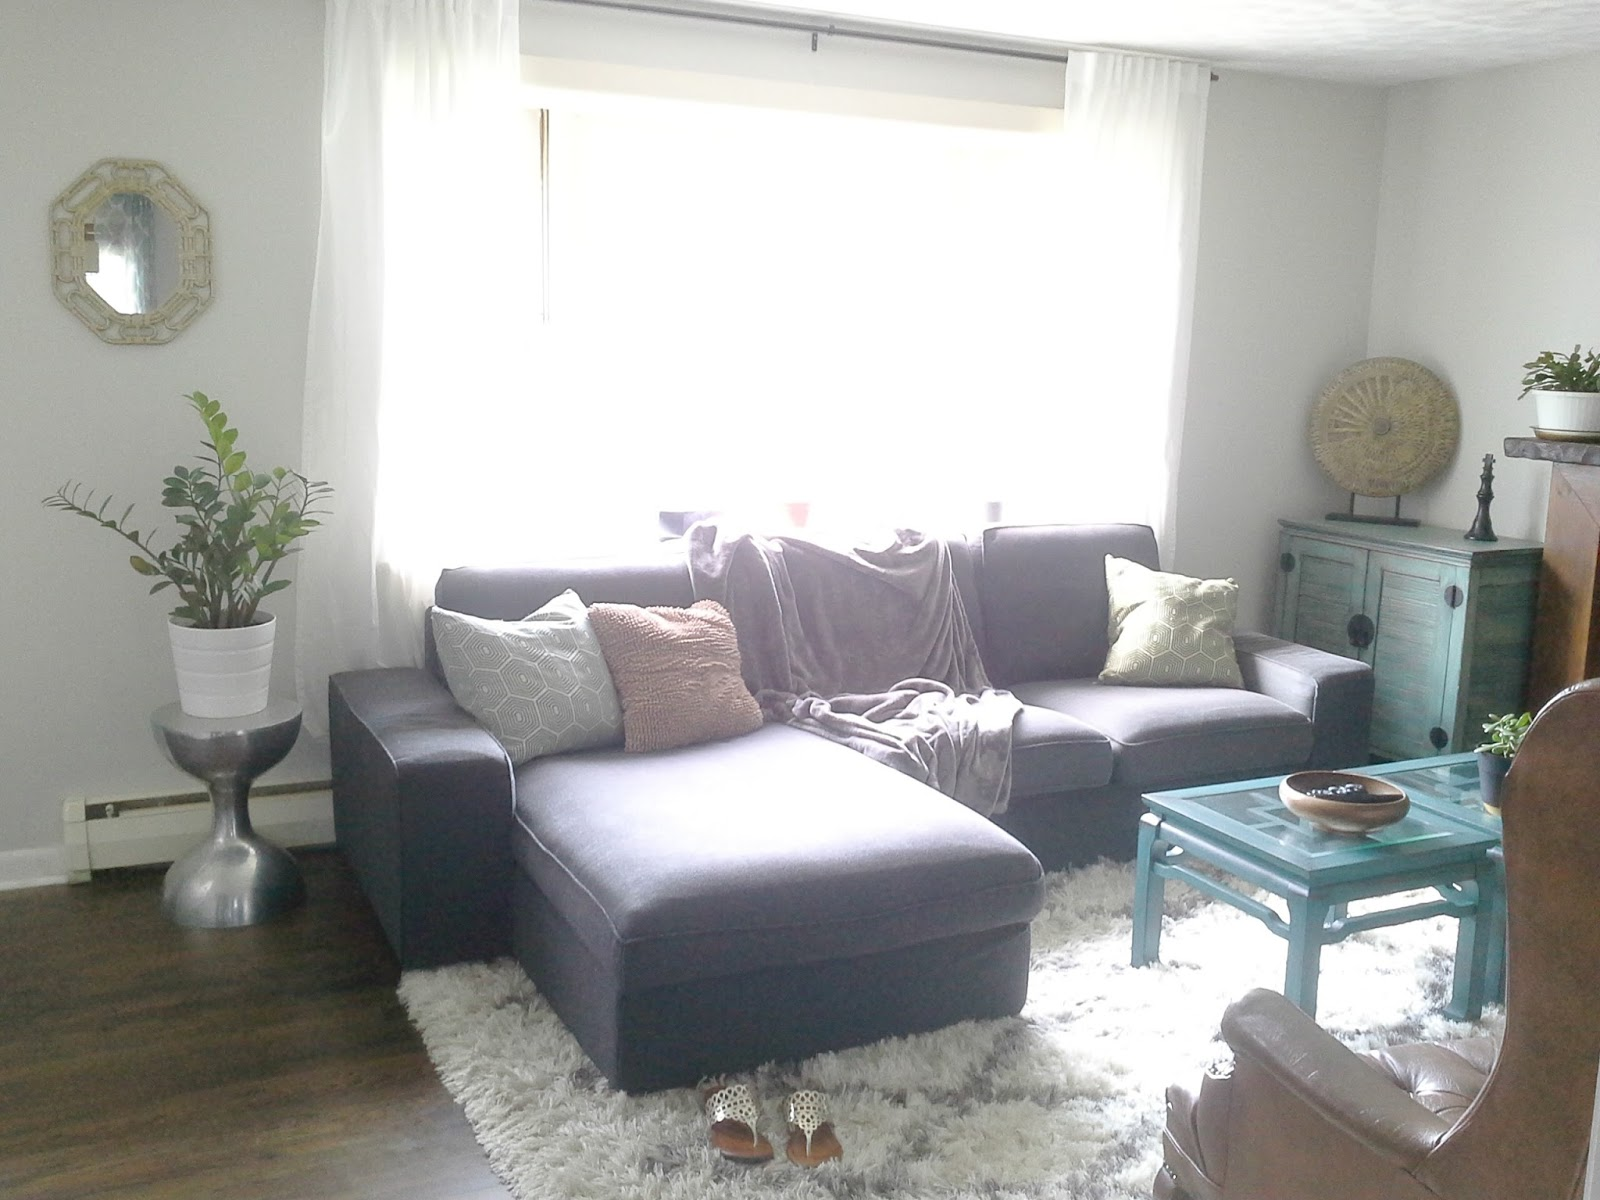 Ikea Kivik Loveseat Chaise Combination Living Room